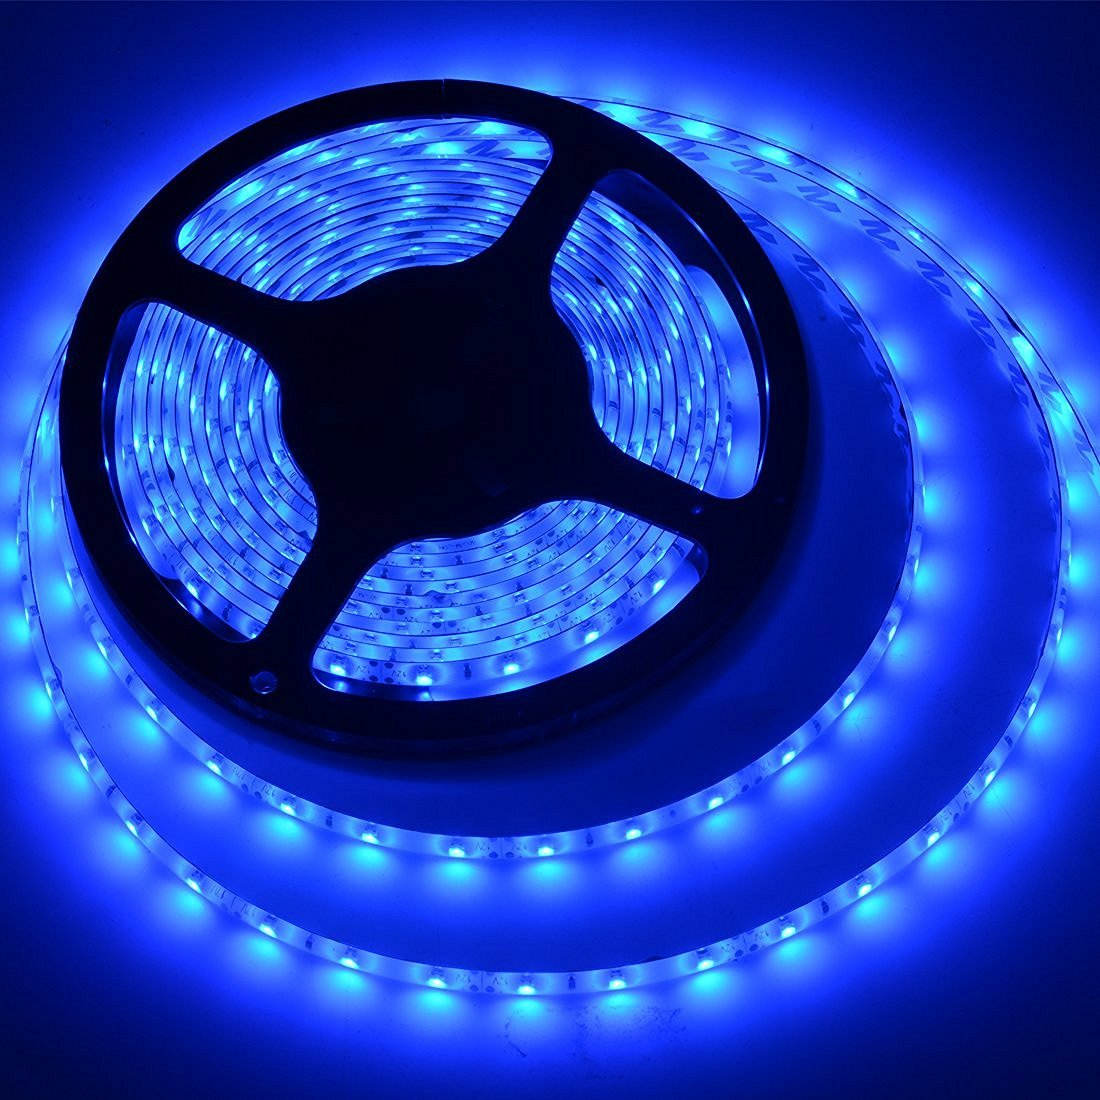 Amazon meili led light strip smd 3528 164 ft 5 meter amazon meili led light strip smd 3528 164 ft 5 meter waterproof 300 leds 12v flexible rope light no power supply blue home improvement mozeypictures Image collections